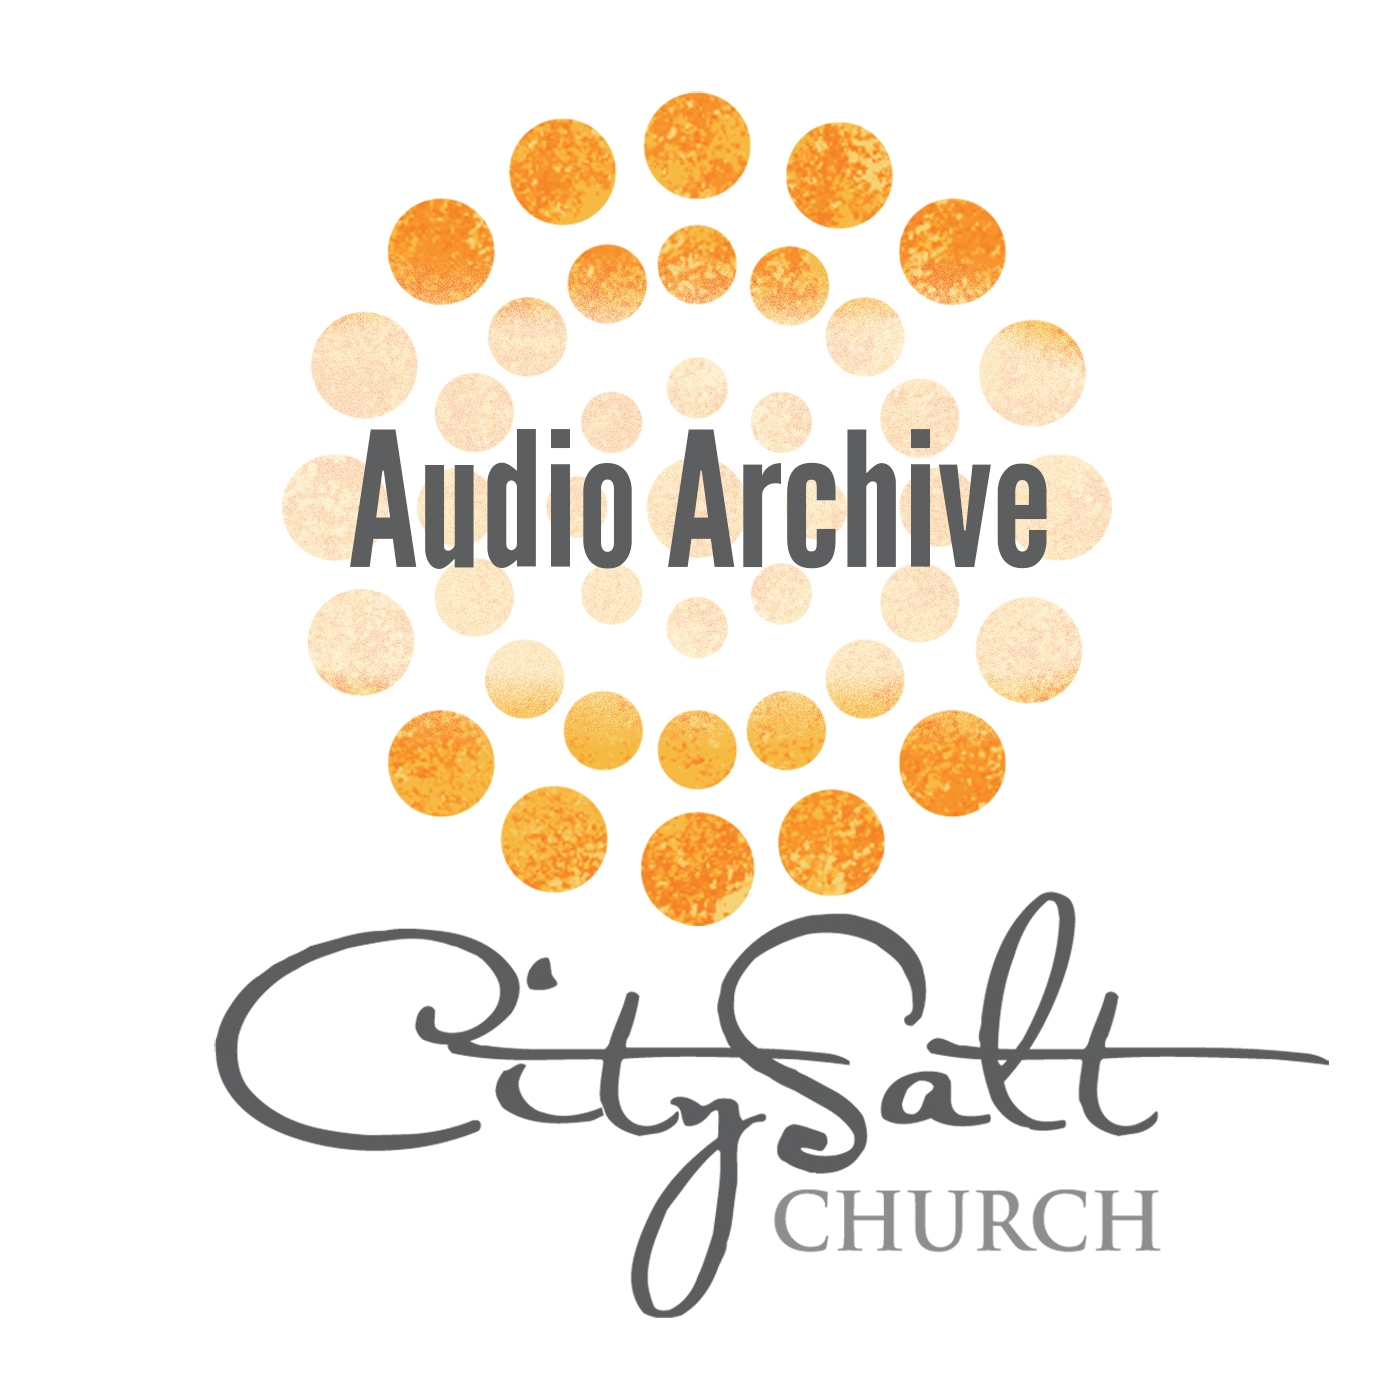 Audio Archive - CitySalt Church